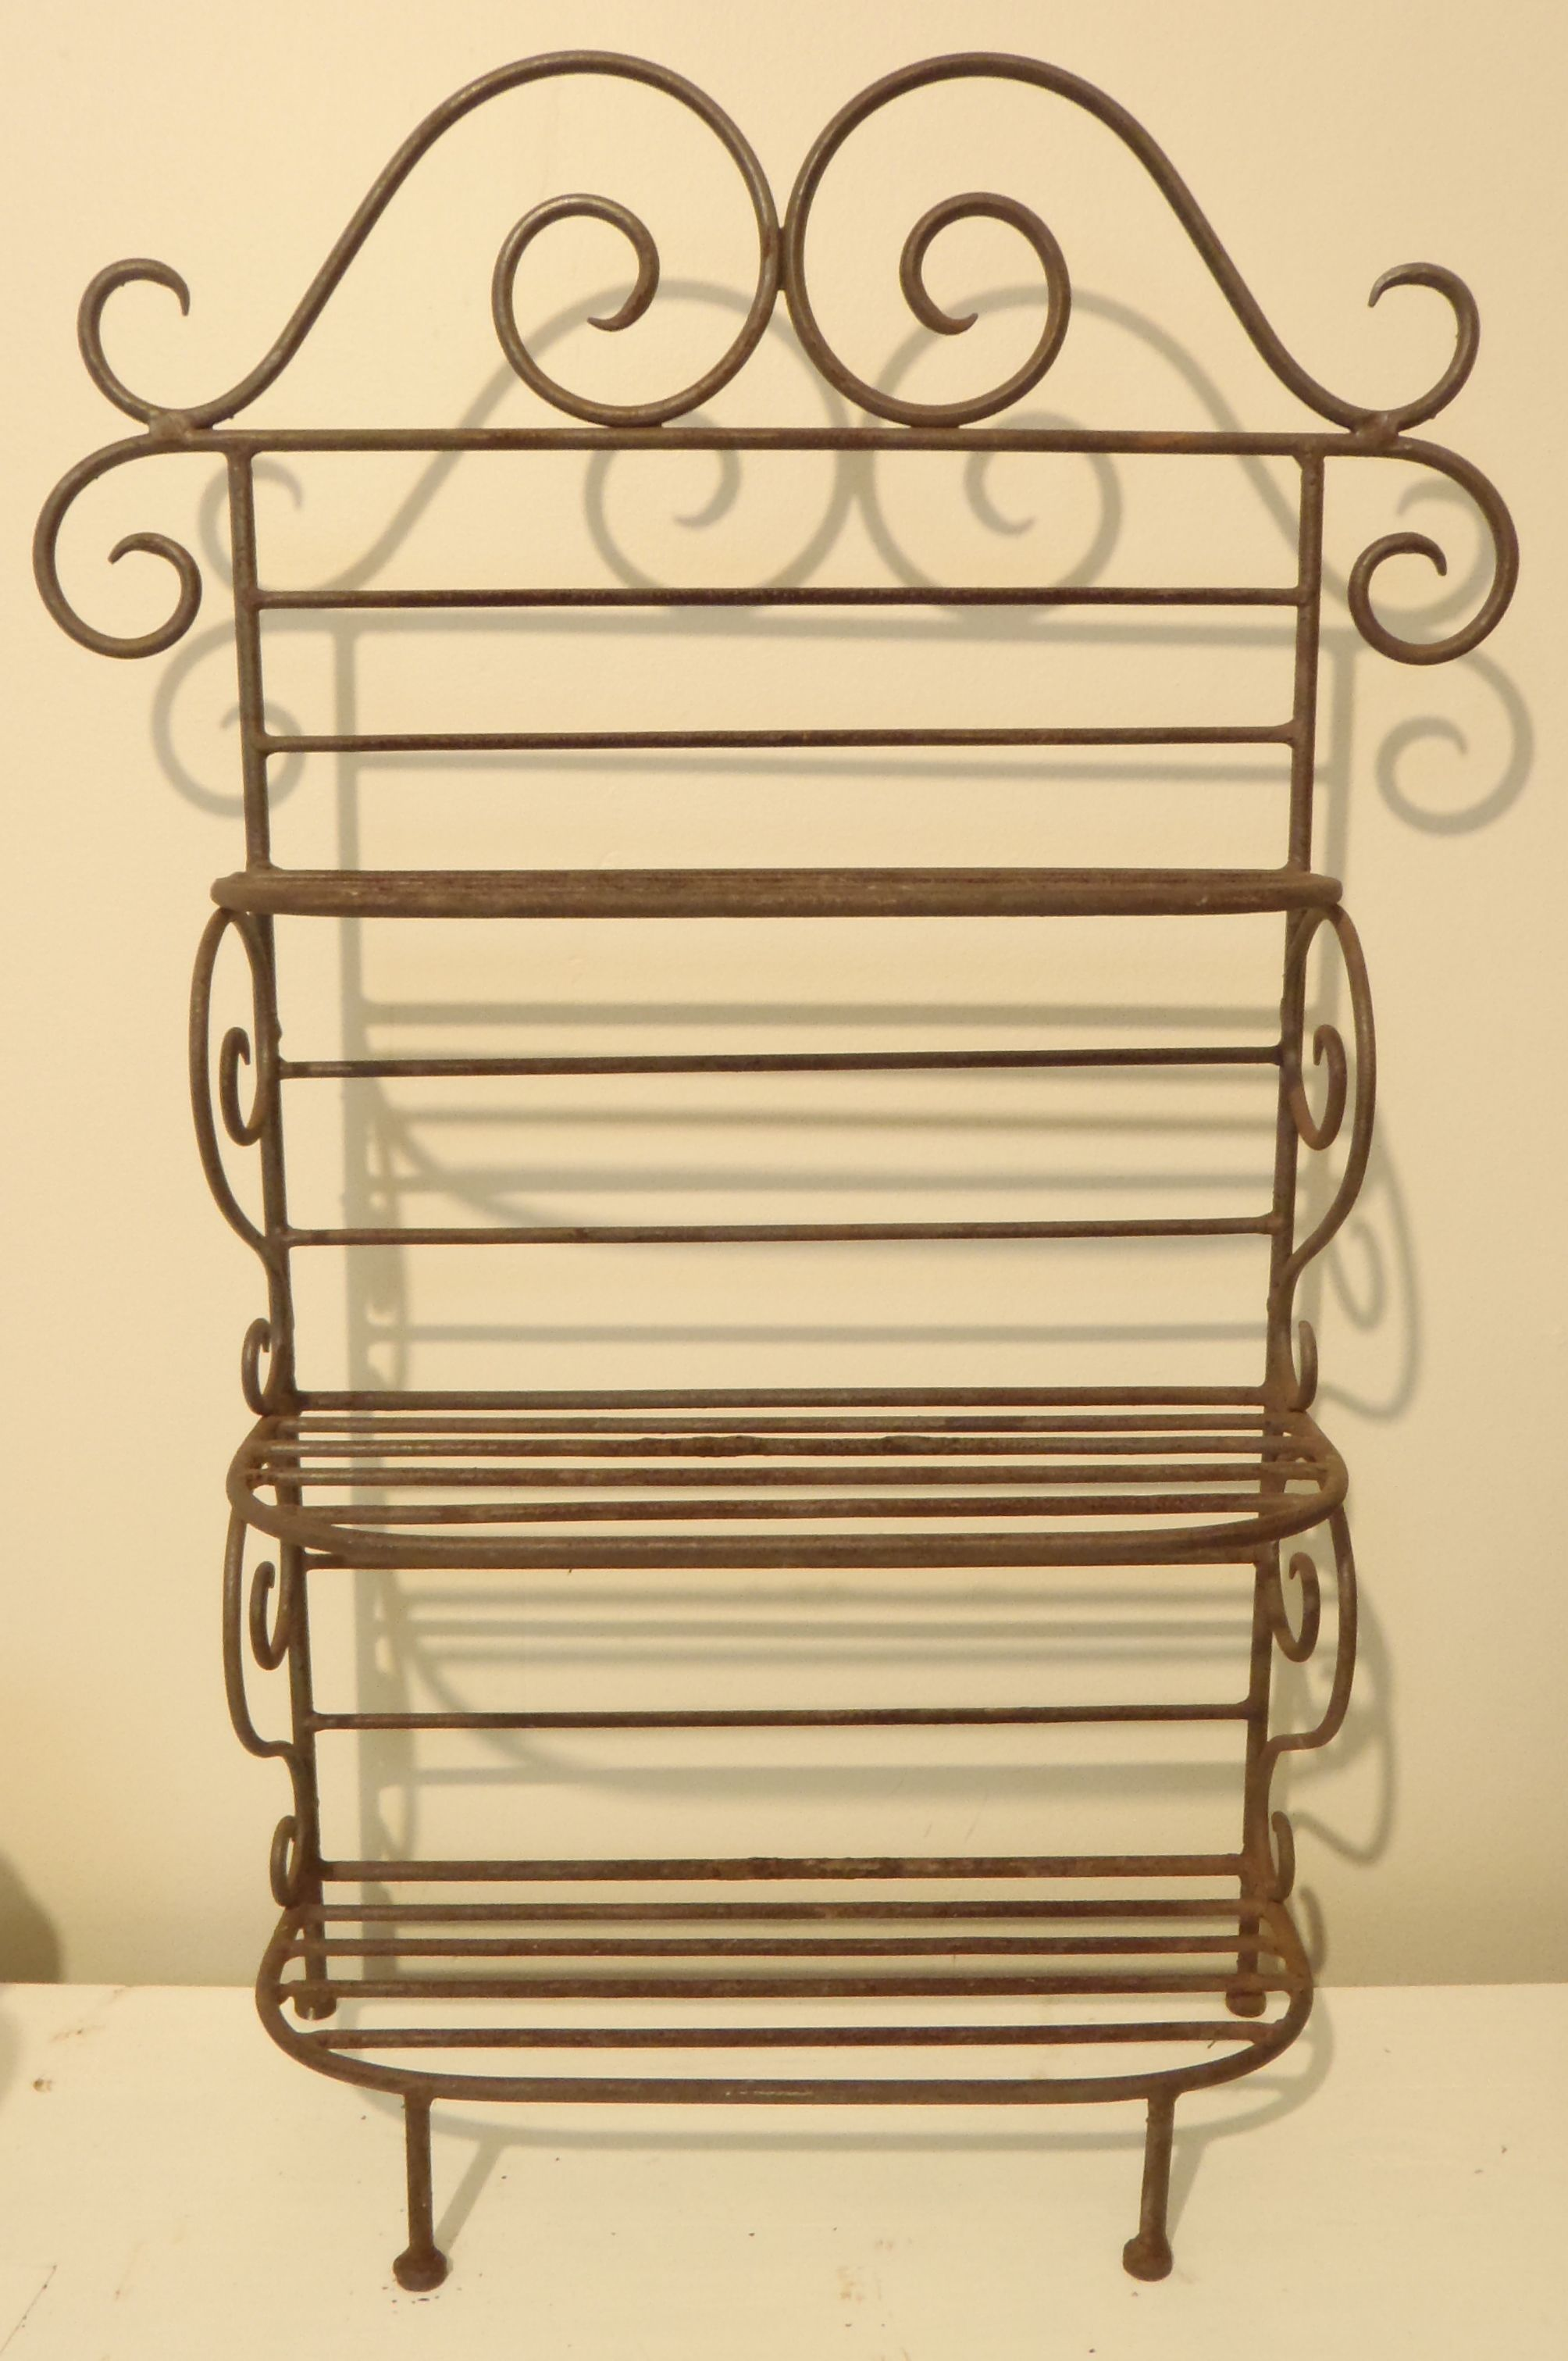 Wrought Iron three tier stand | Ideas "|2008|3023|?|c0b3e5ce791addcd119f2d10bc269dbd|False|UNLIKELY|0.3602892756462097